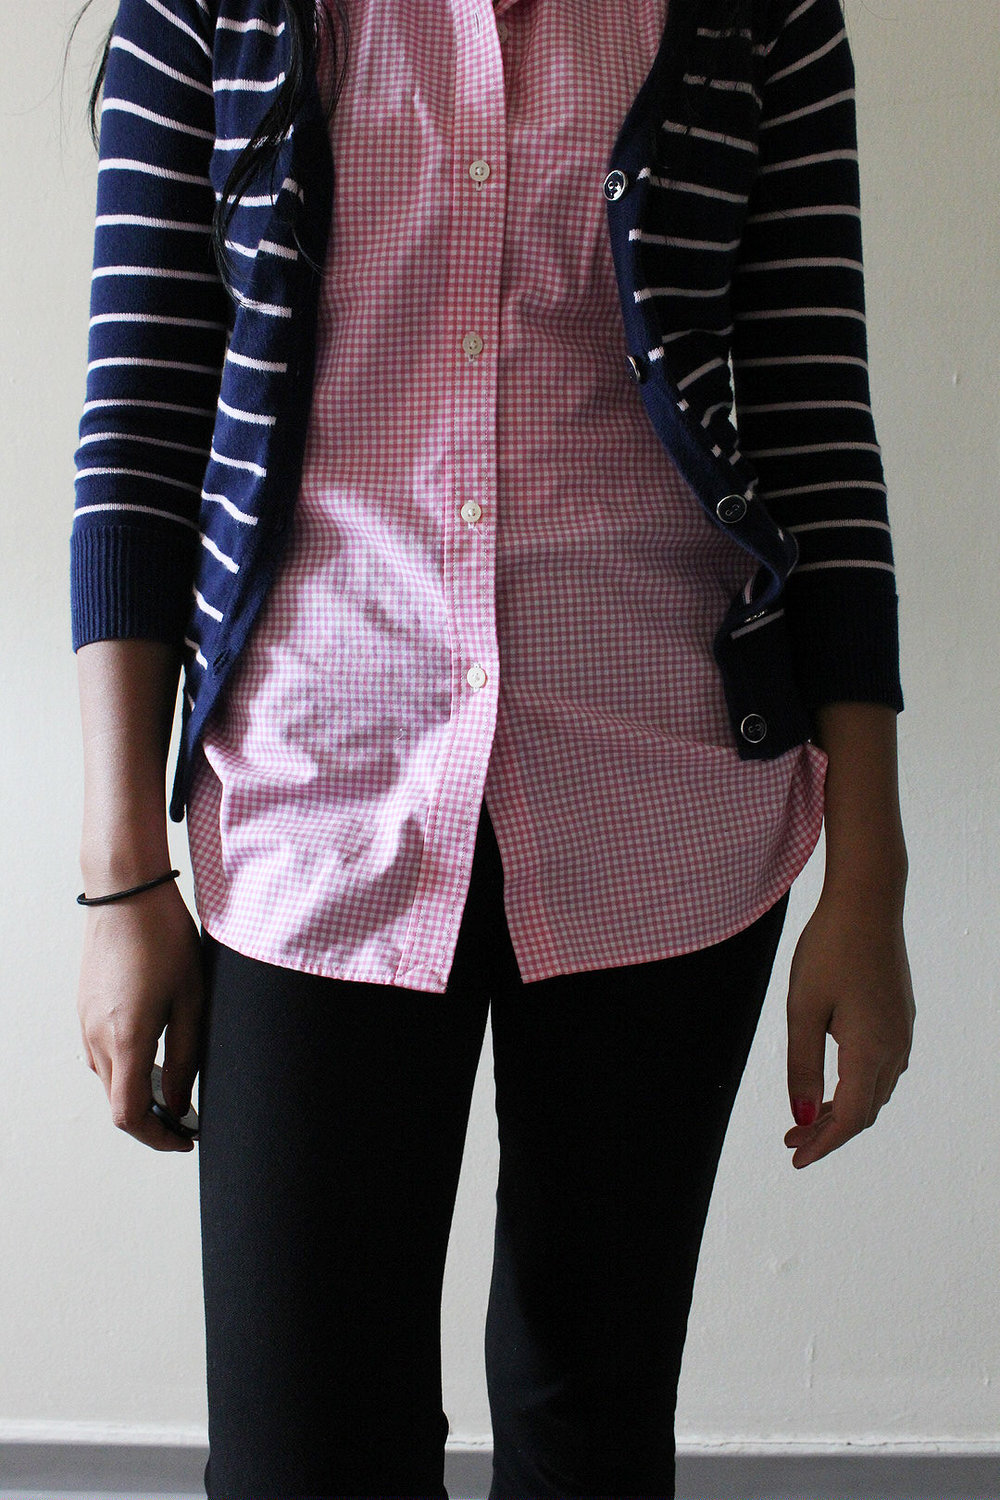 Styling-Different-Patterns-Stripes-Checkers-Work-Appropriate-Office-Wear-Style-Blogger-Fashionista-LINDATENCHITRAN-8-1616x1080.jpg